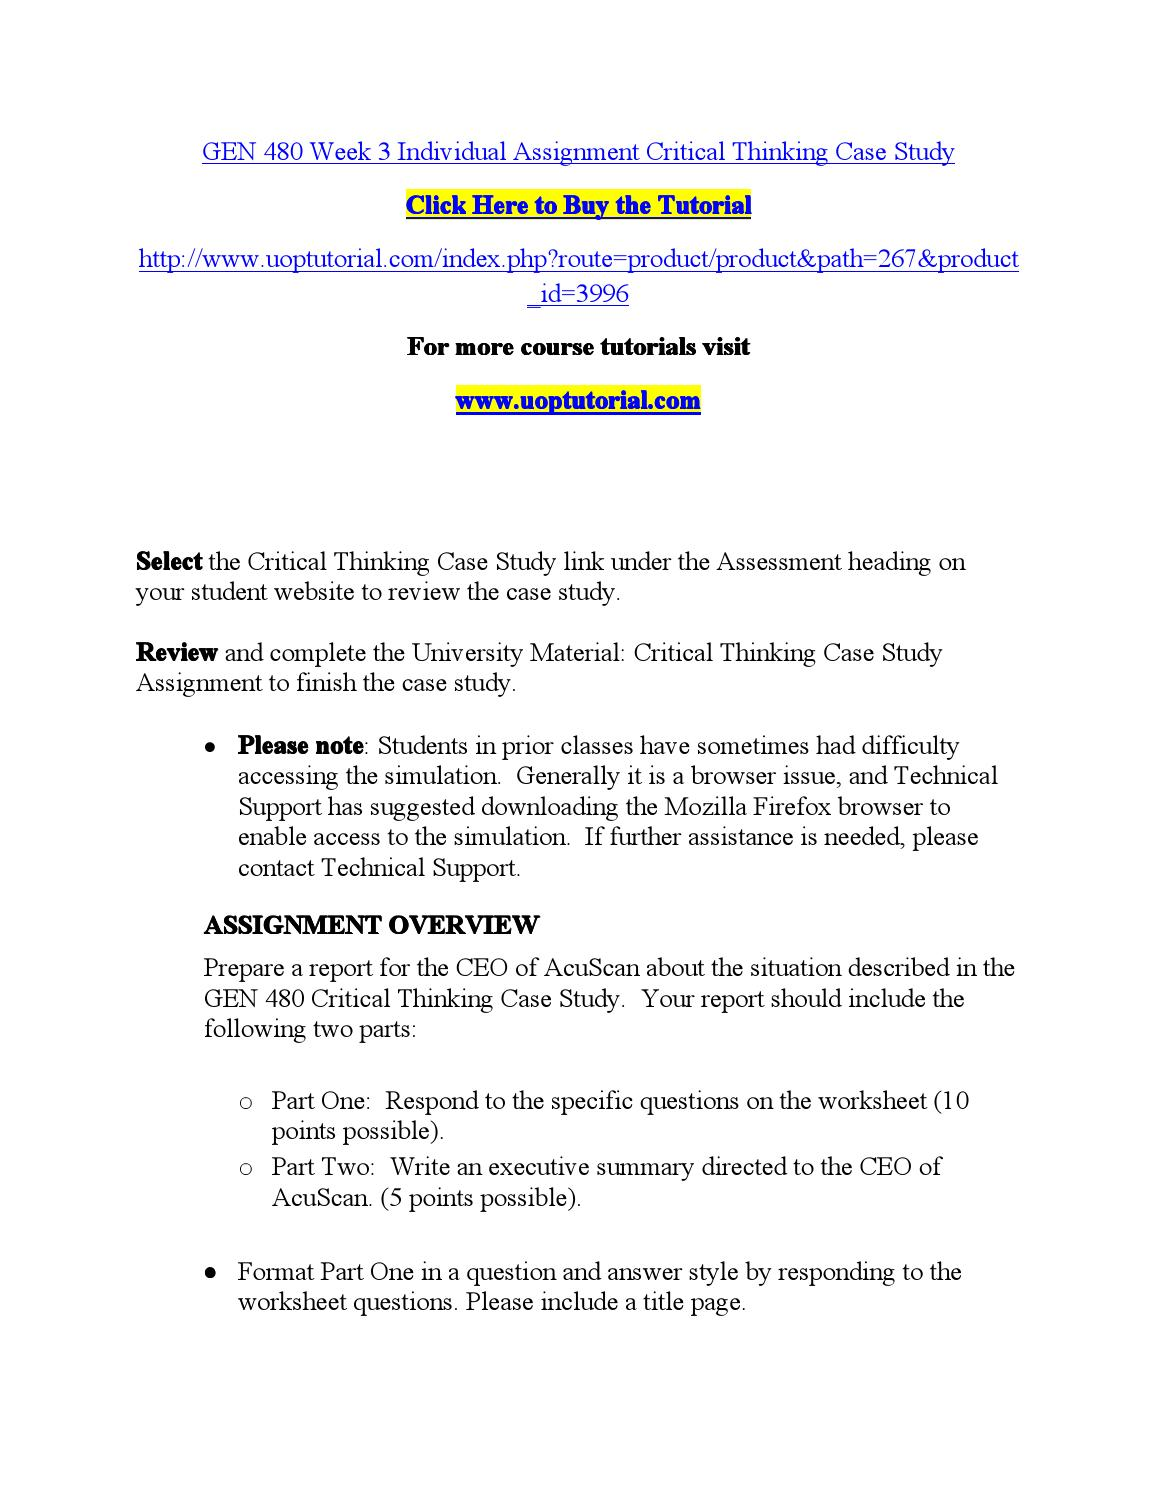 critical thinking case study acuscan